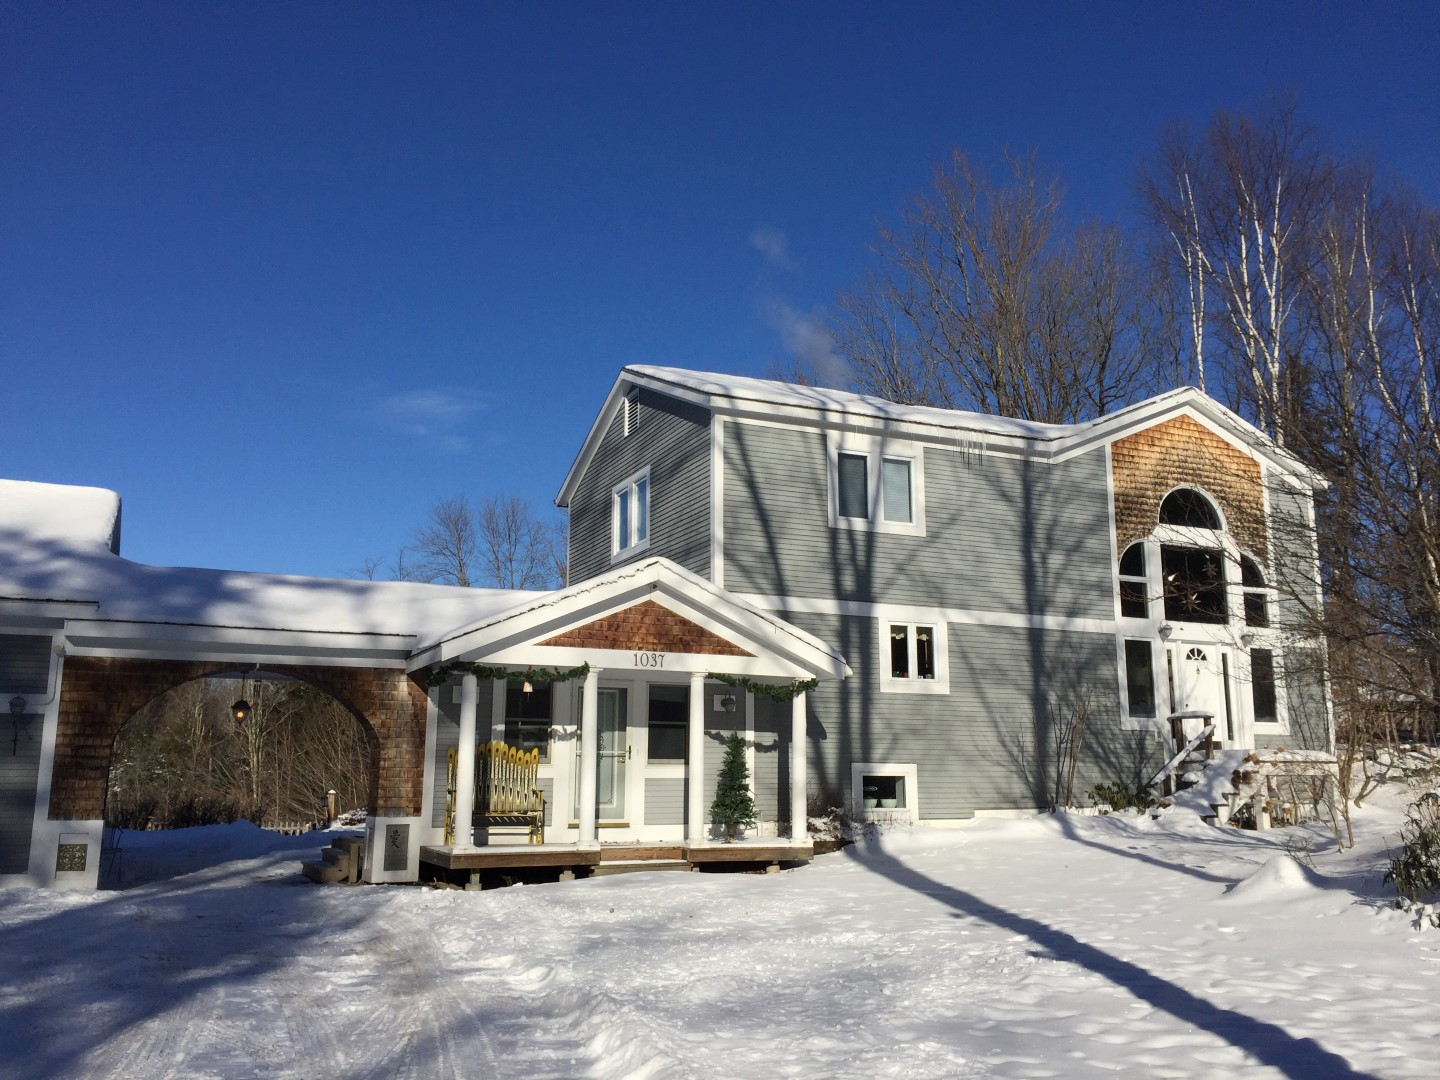 1037 Cote Hill Rd, Morristown, Vermont 05661